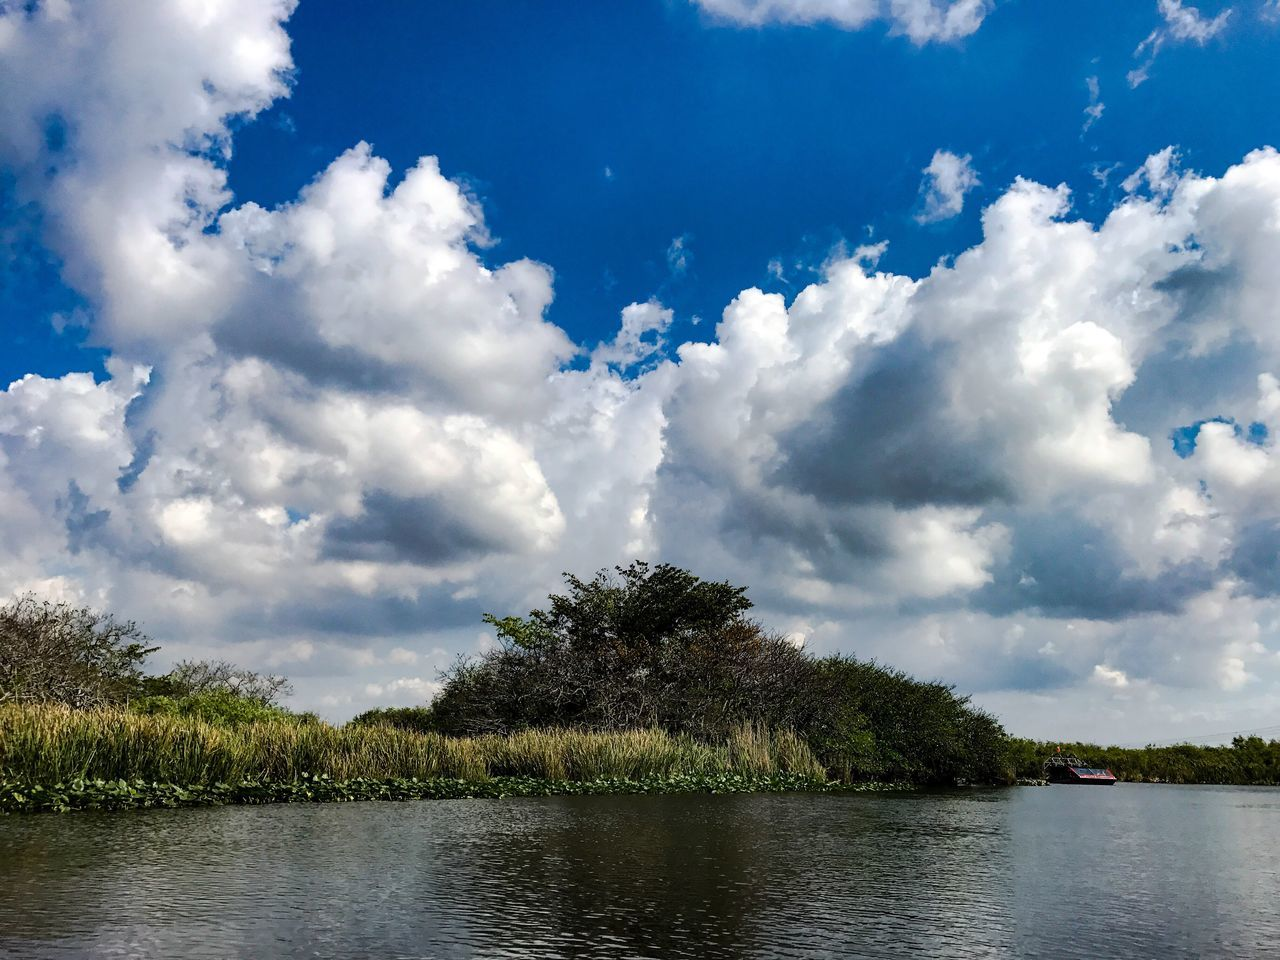 Water Sky Cloud - Sky Nature Tree Scenics Tranquility Day Outdoors Beauty In Nature No People Landscape Everglades  Evergladesnationalpark Florida Florida Nature